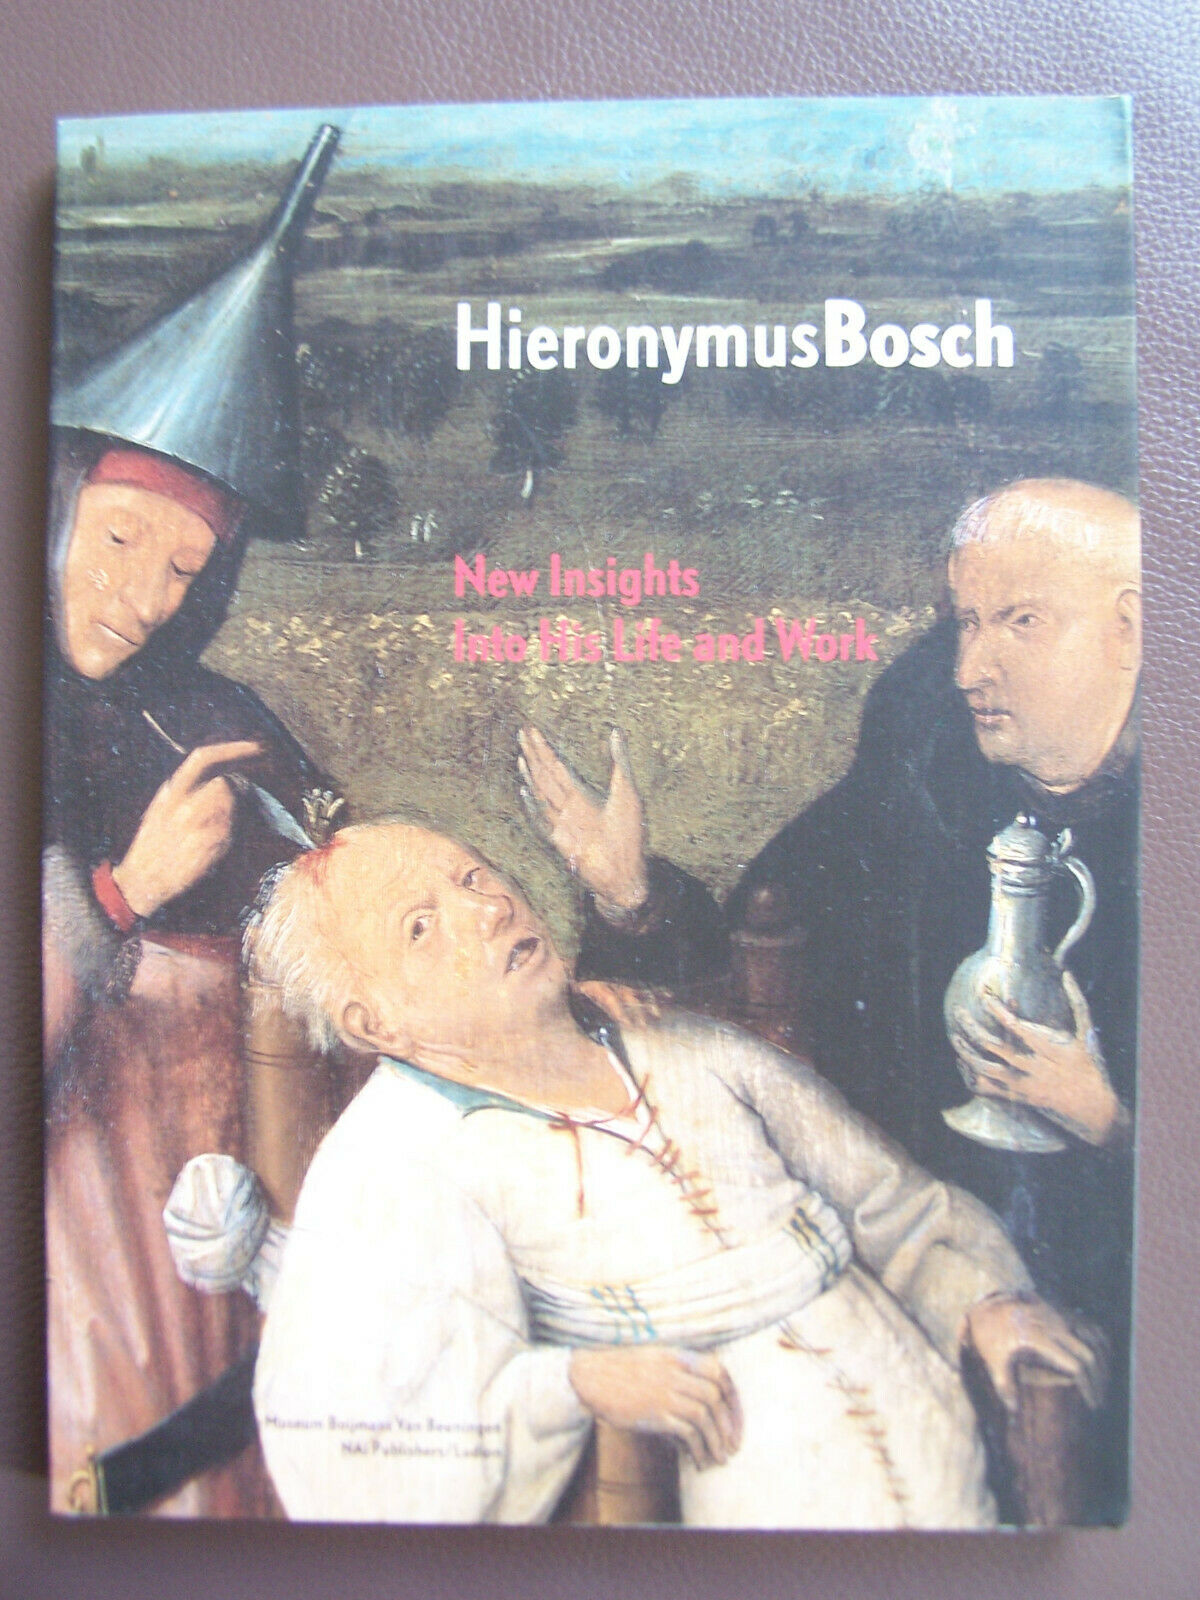 Hieronymus Bosch: New Insights Into His Life and Work ISBN 9056622145